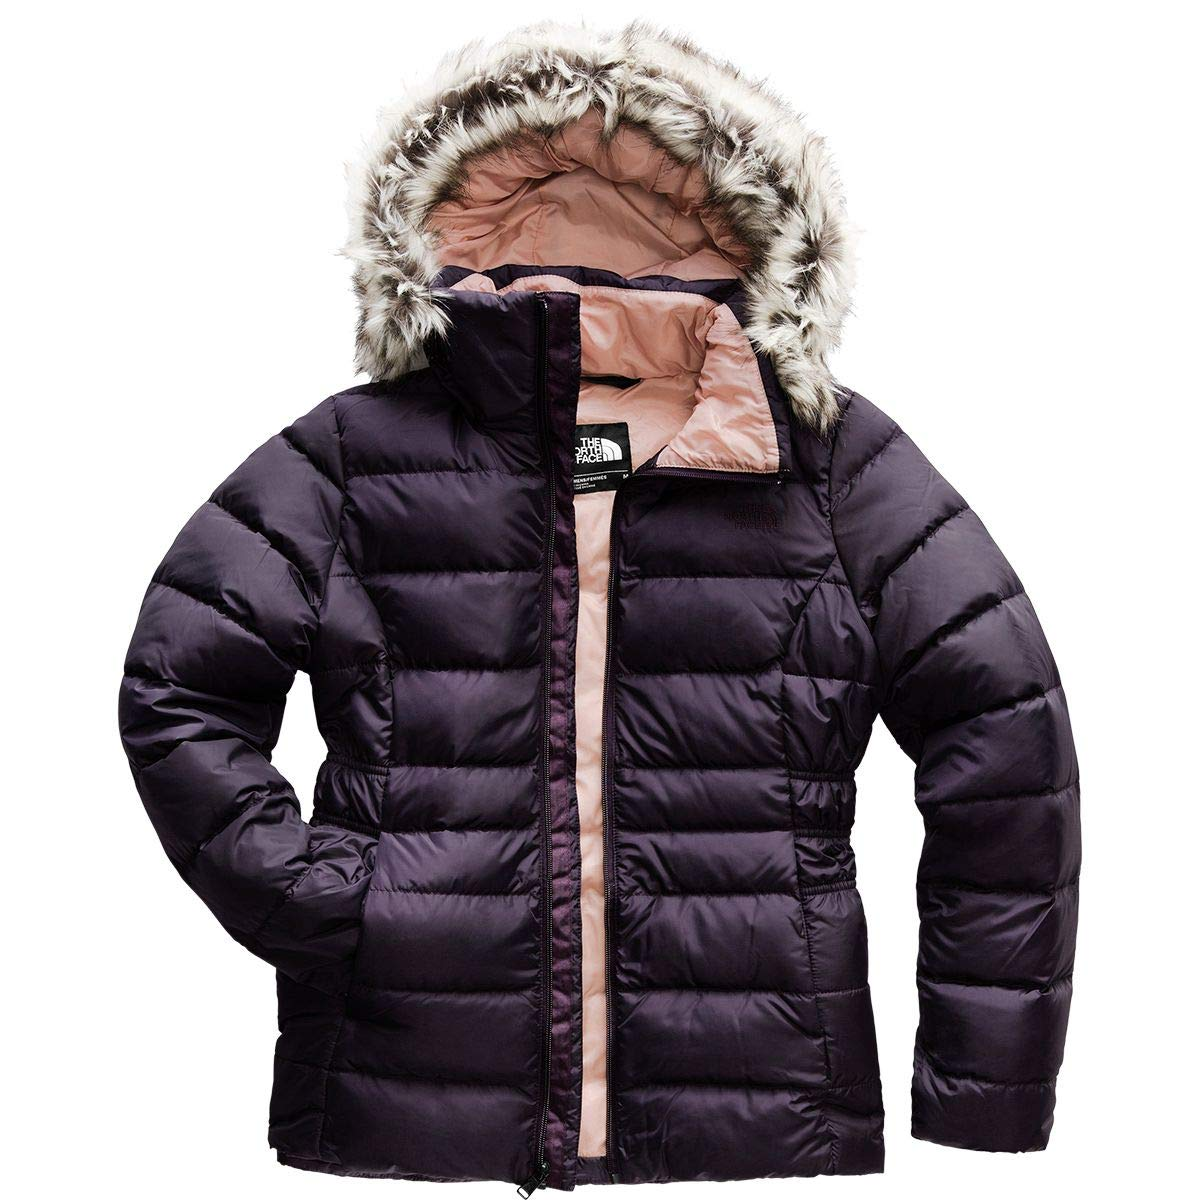 Galaxy Purple THE NORTH FACE Women's Gotham Jacket II